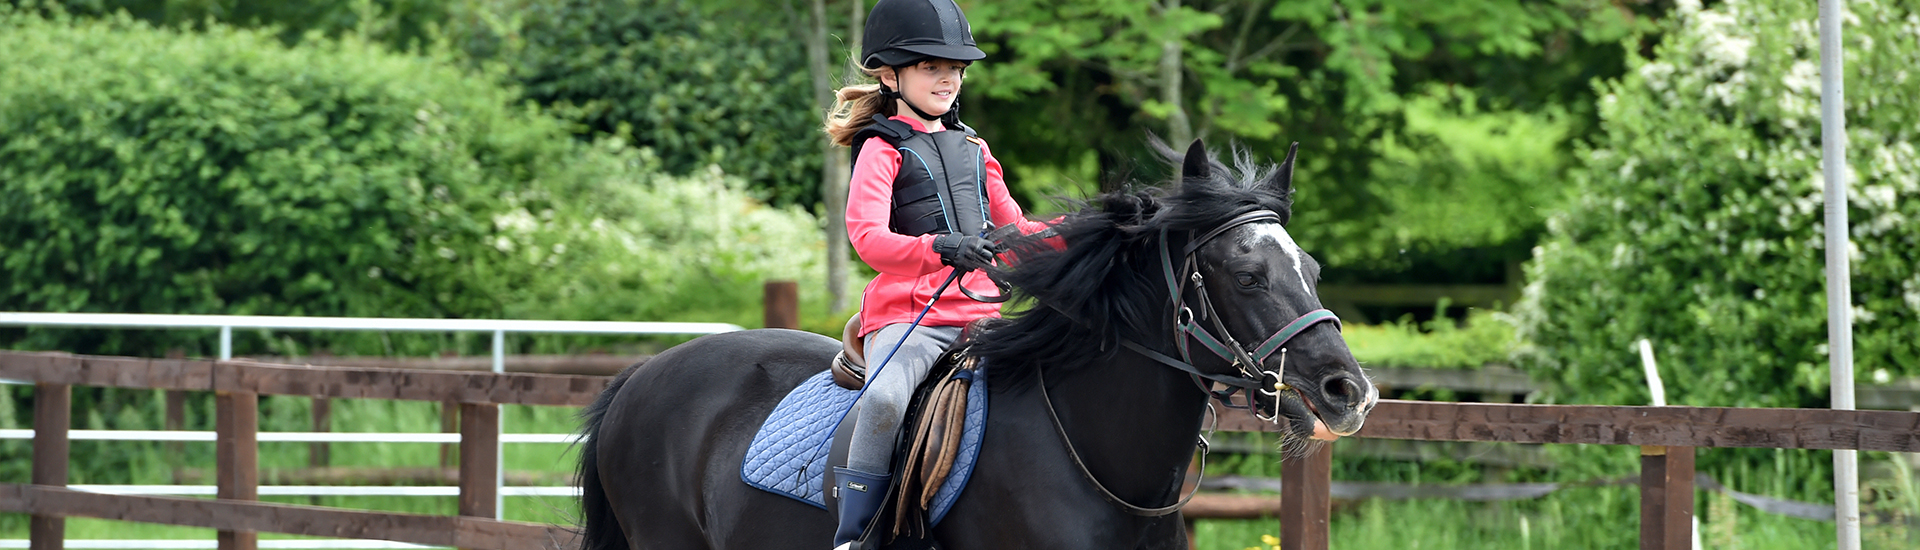 Ride High Riding Lessons Banner